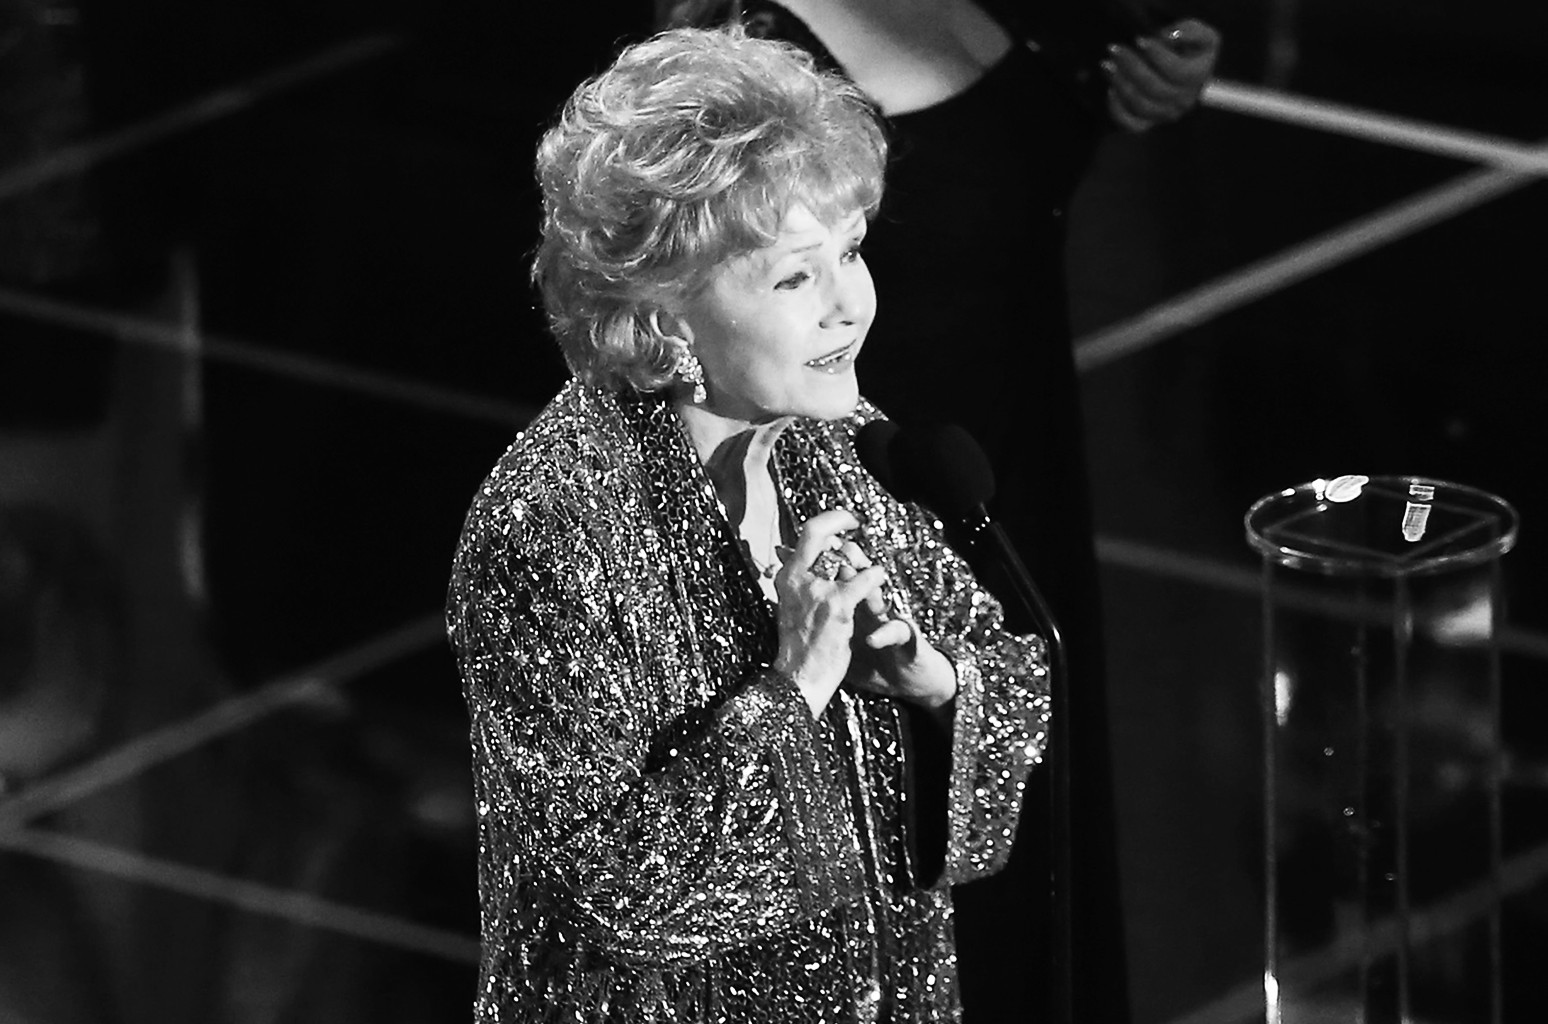 Debbie Reynolds, recipient of the Lifetime Achievement Award, speaks onstage at TNT's 21st Annual Screen Actors Guild Awards at The Shrine Auditorium on Jan. 25, 2015 in Los Angeles.